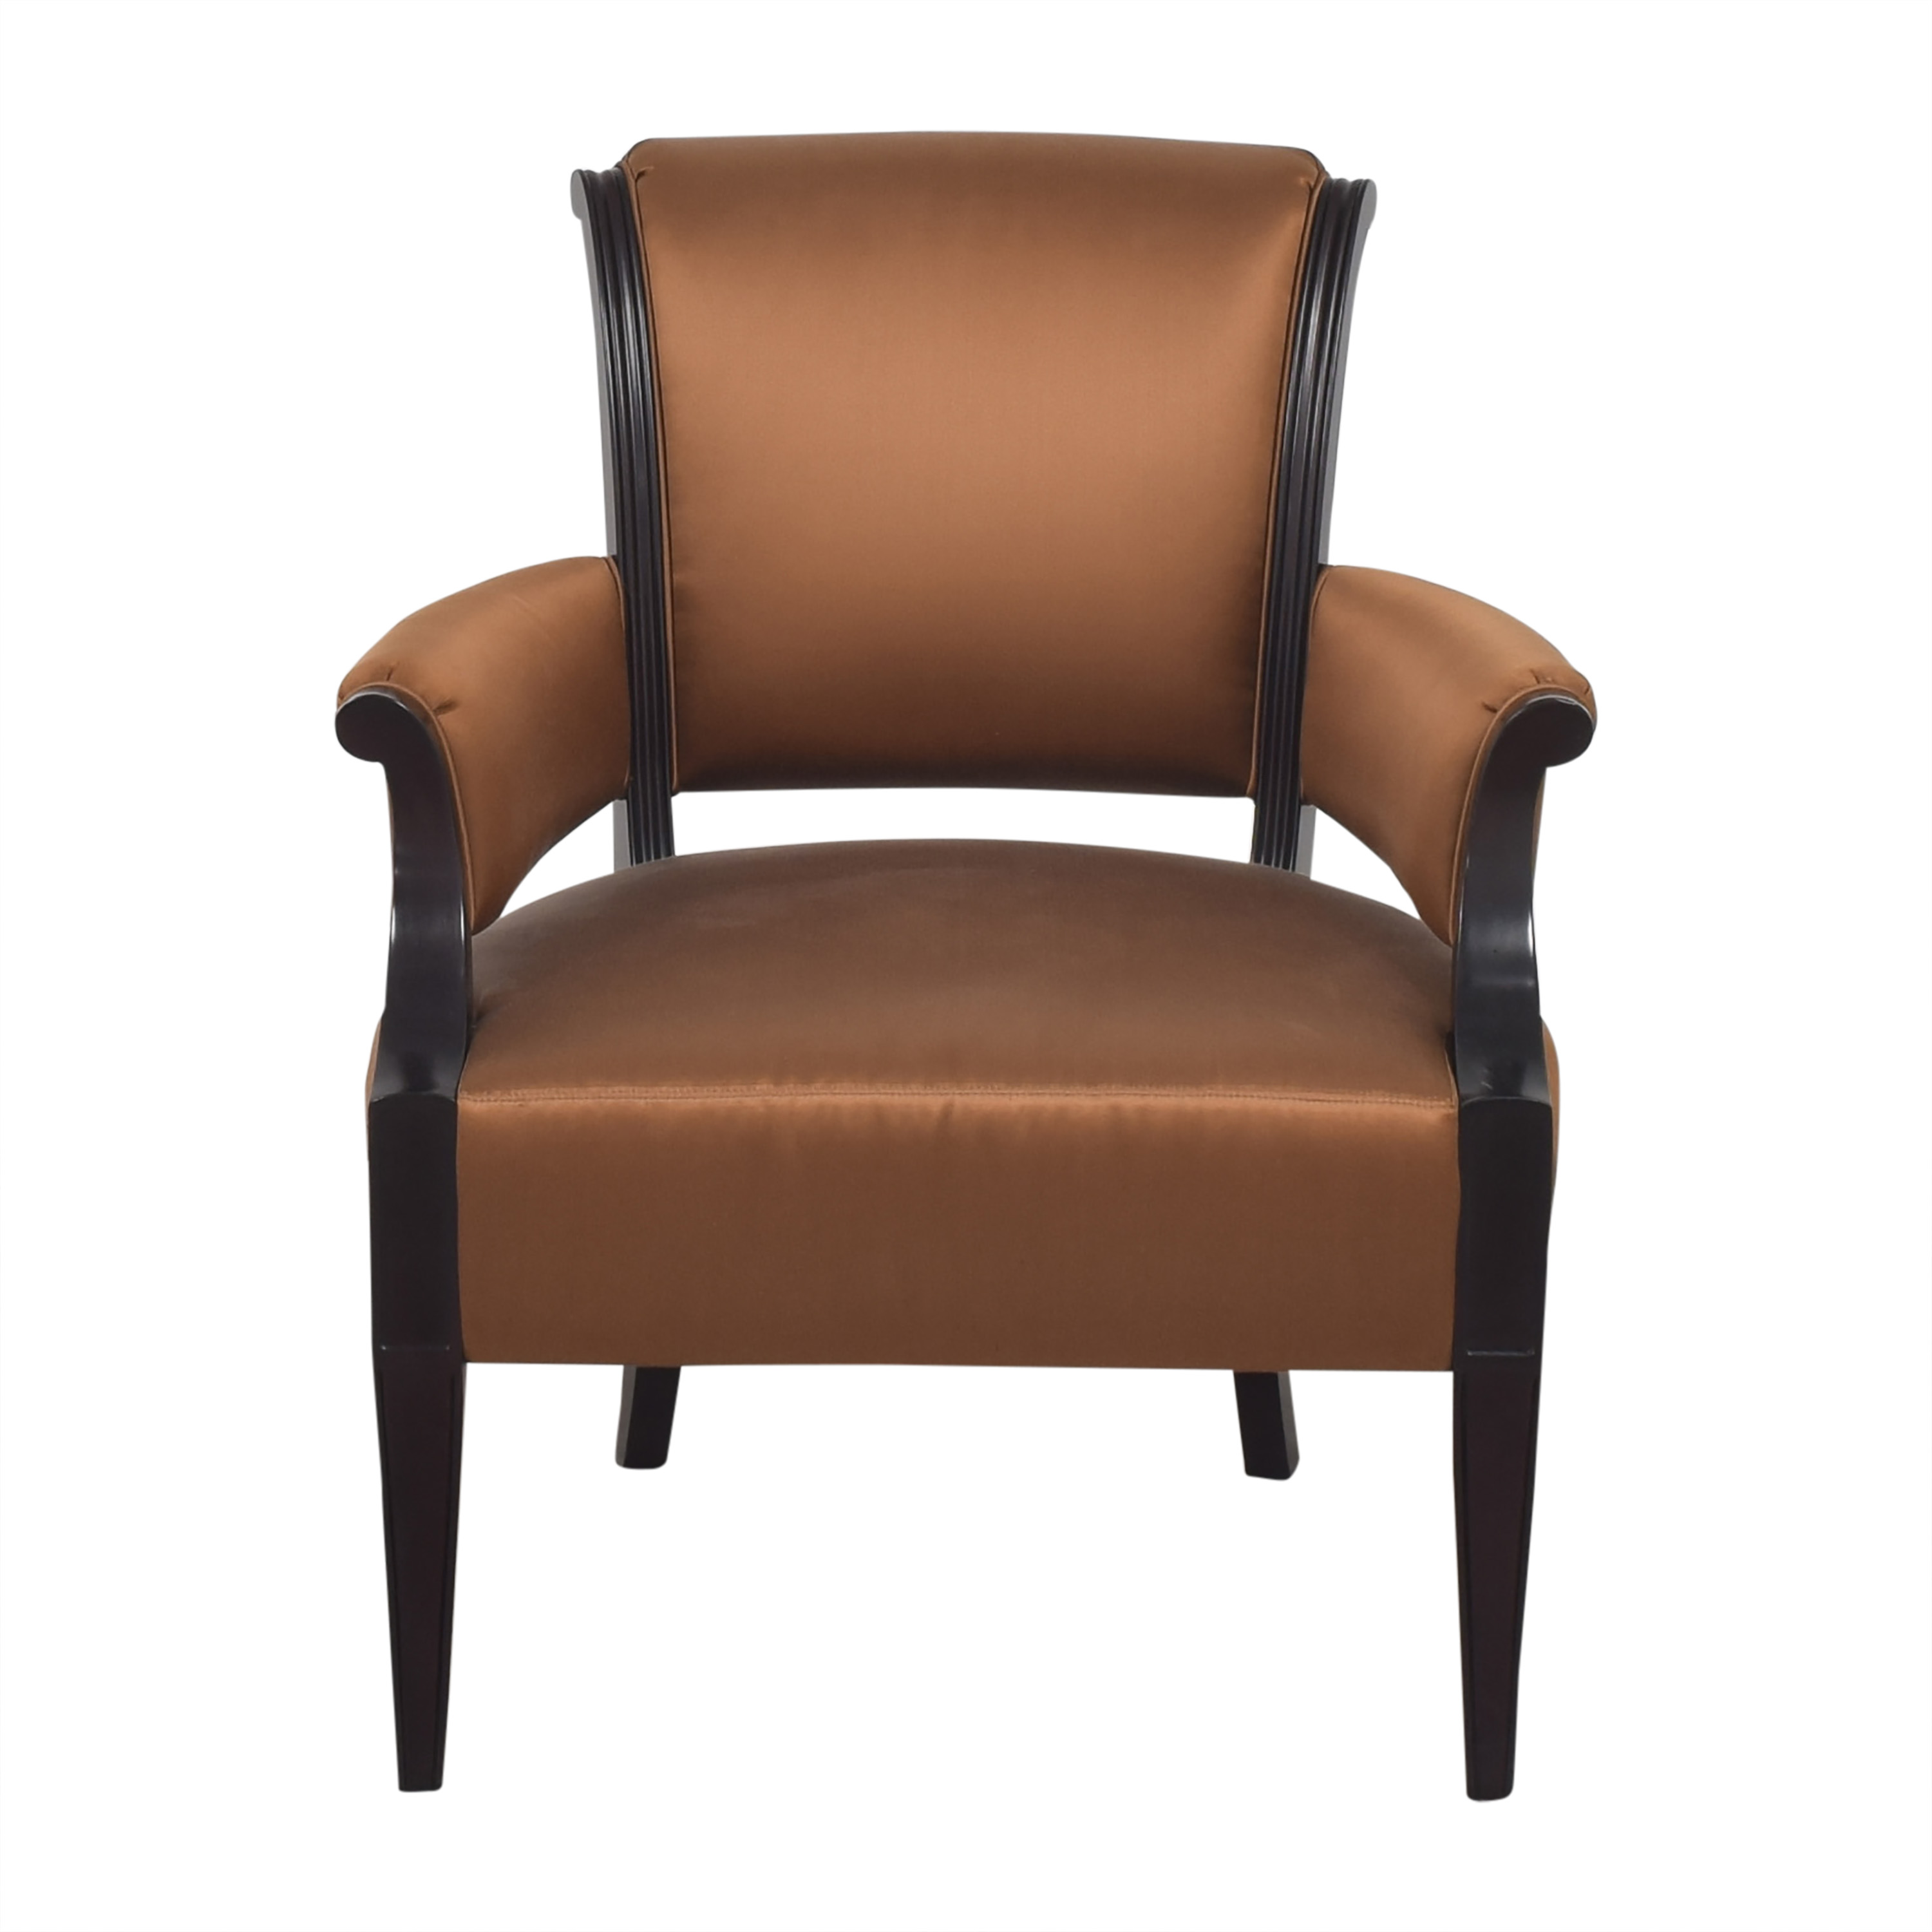 Baker Furniture Baker Furniture Barbara Barry Upholstered Chair ma